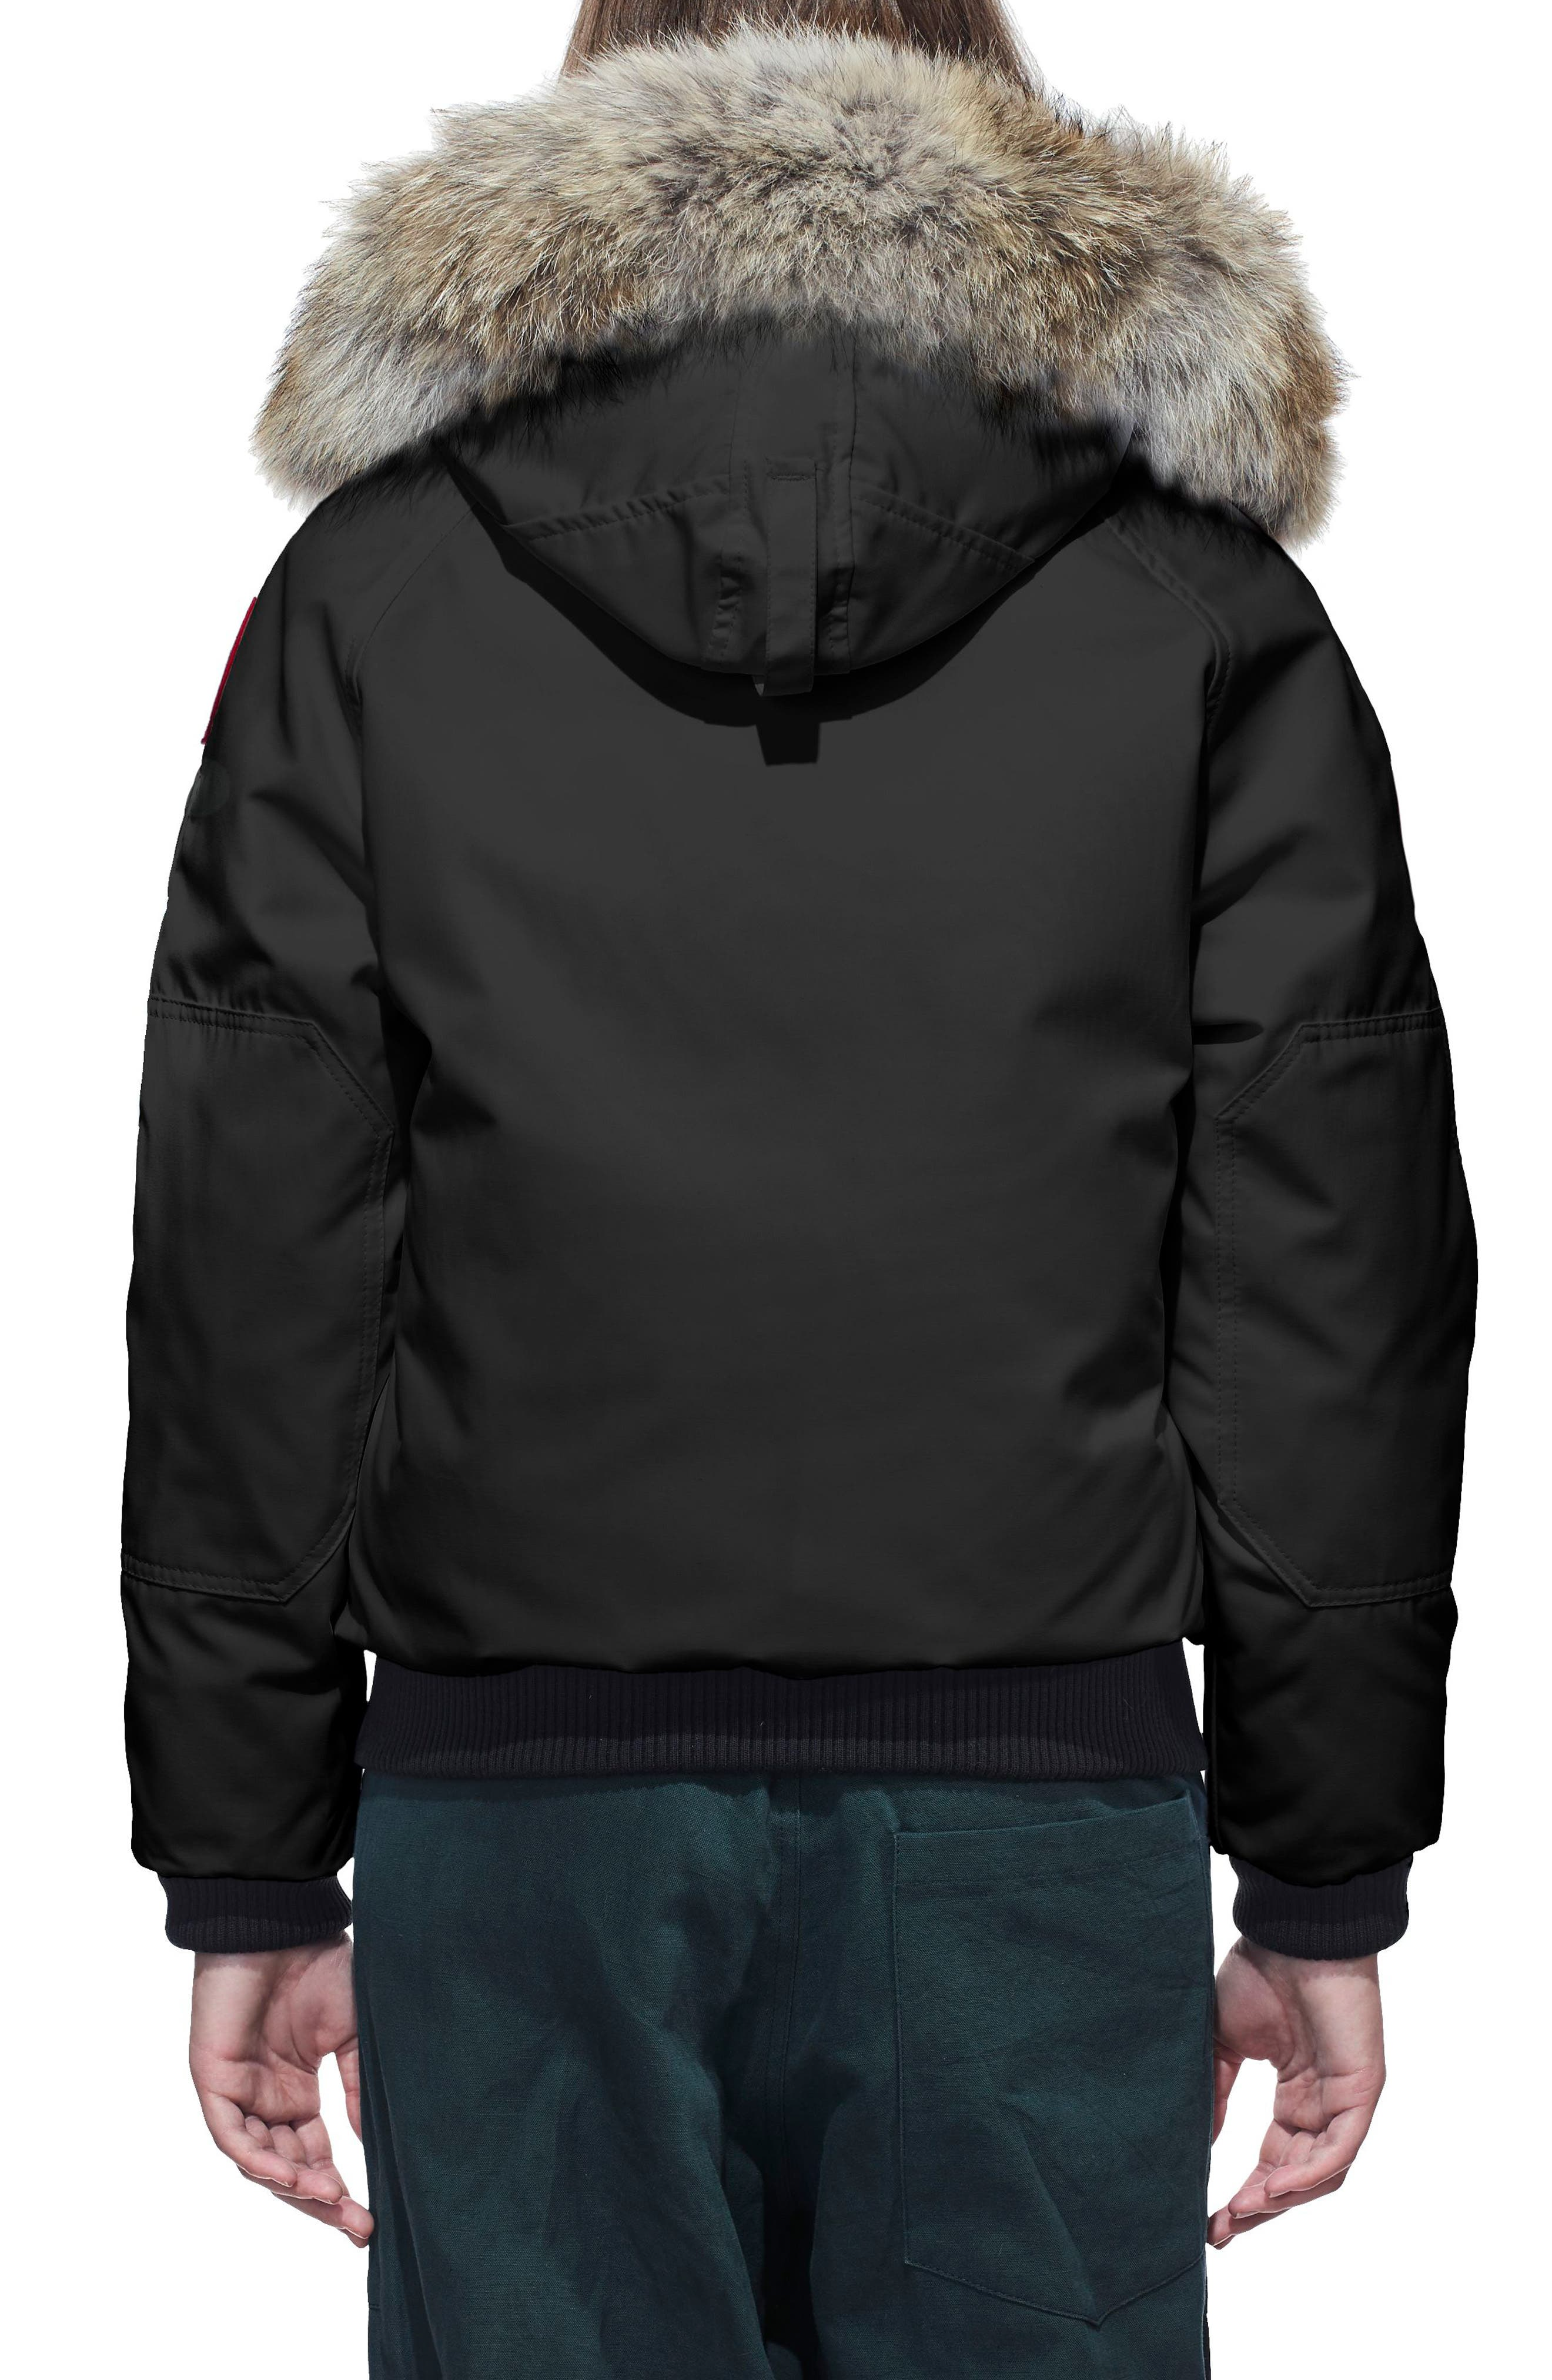 CANADA GOOSE, Chilliwack Fusion Fit 625 Fill Power Down Bomber Jacket with Genuine Coyote Fur Trim, Alternate thumbnail 2, color, BLACK